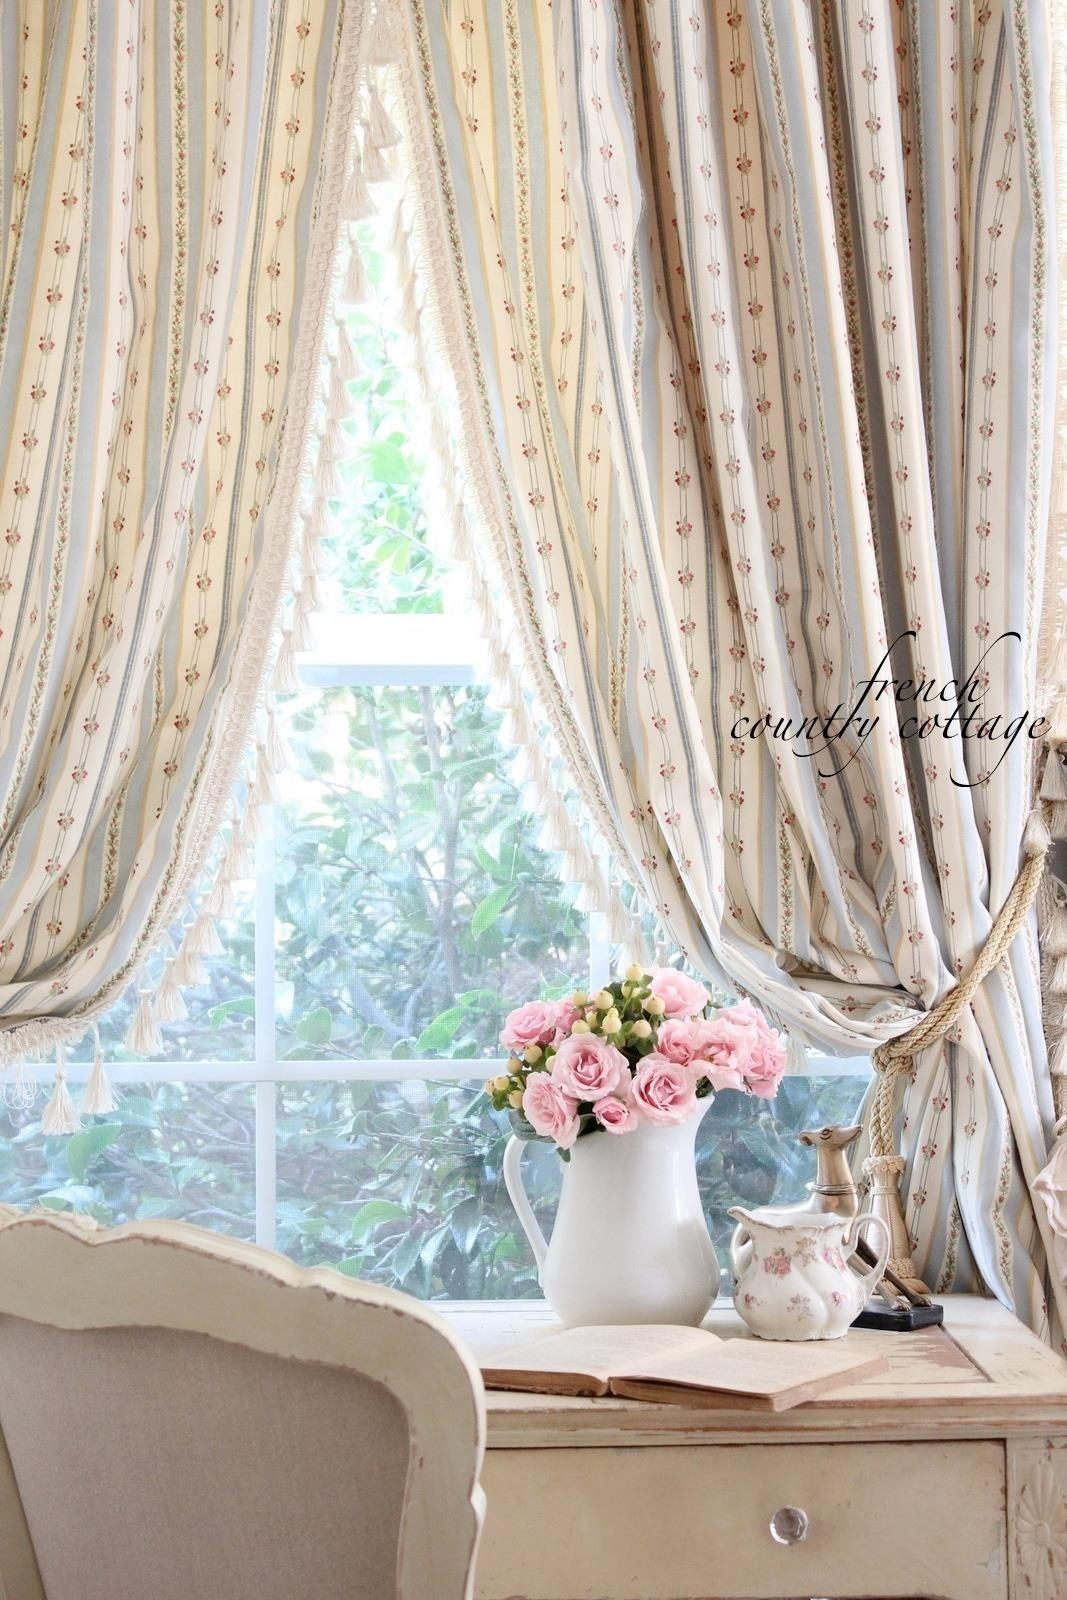 Shabby Chic French Country Curtains For The Home Pinterest For Cottage Style Curtains Cott French Country Bedrooms Cottage Curtains French Country Curtains